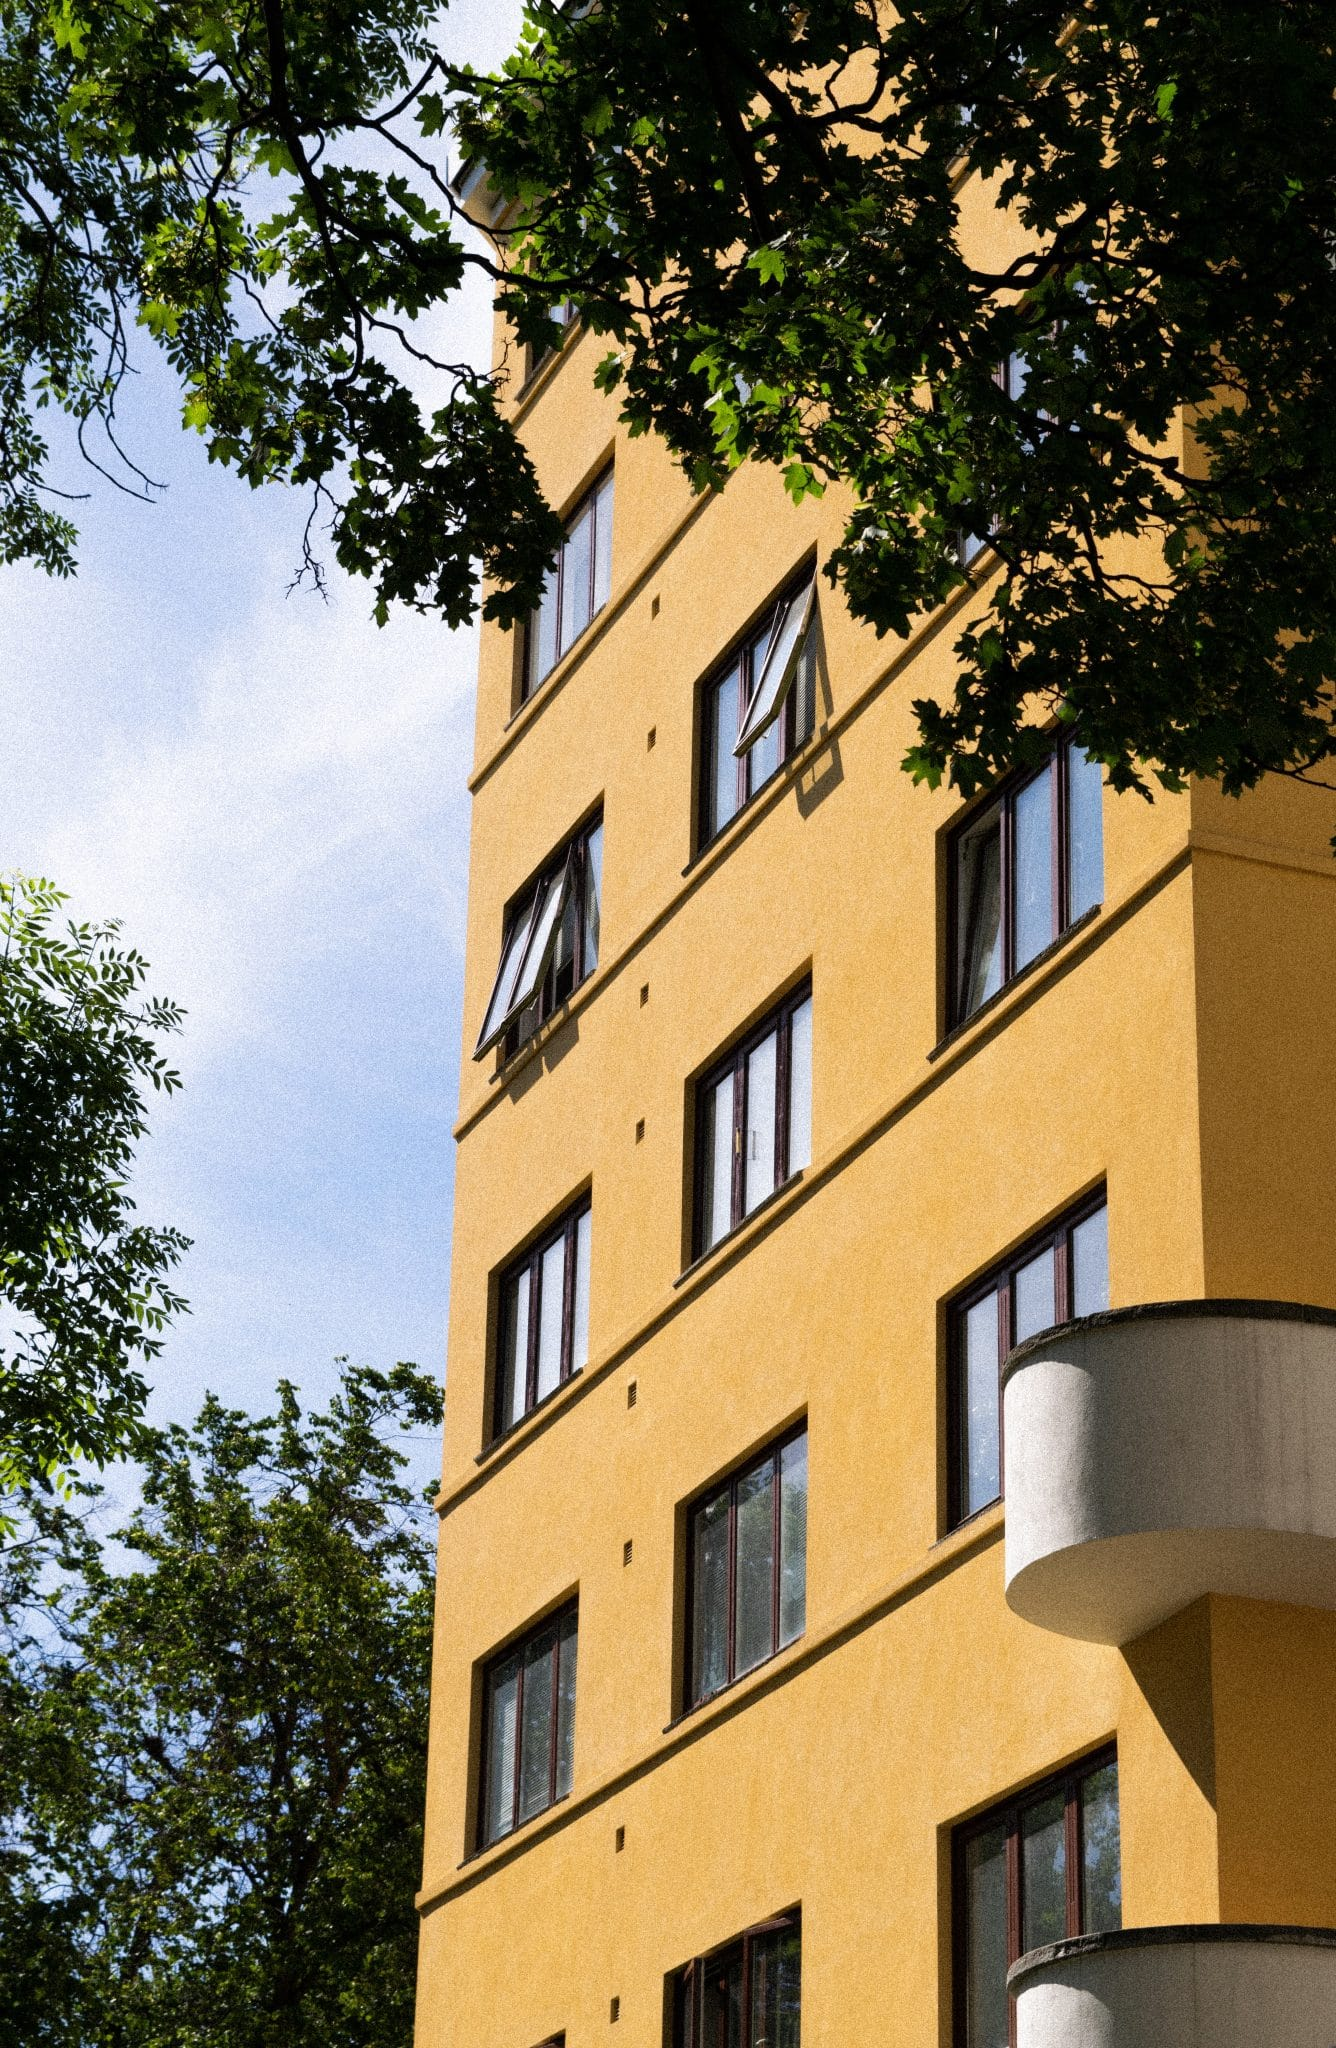 apartment-windows-open-on-the-side-of-a-yellow-brick-building